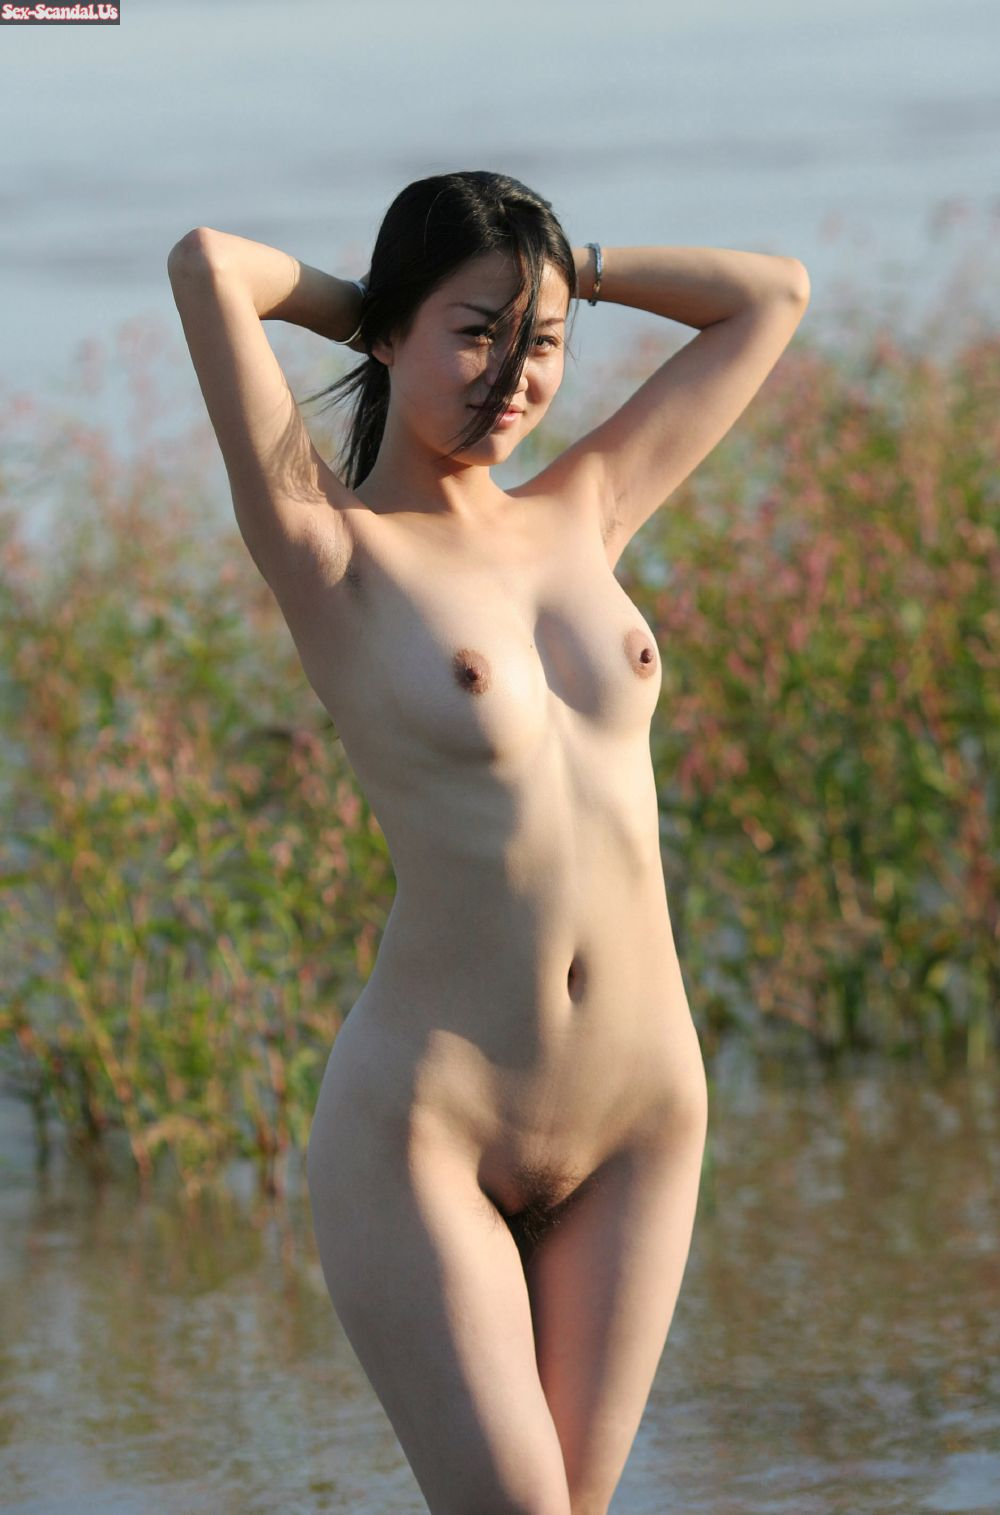 Hot Chinese Girls Pics Nude Art By Model  Yang Fang -7738